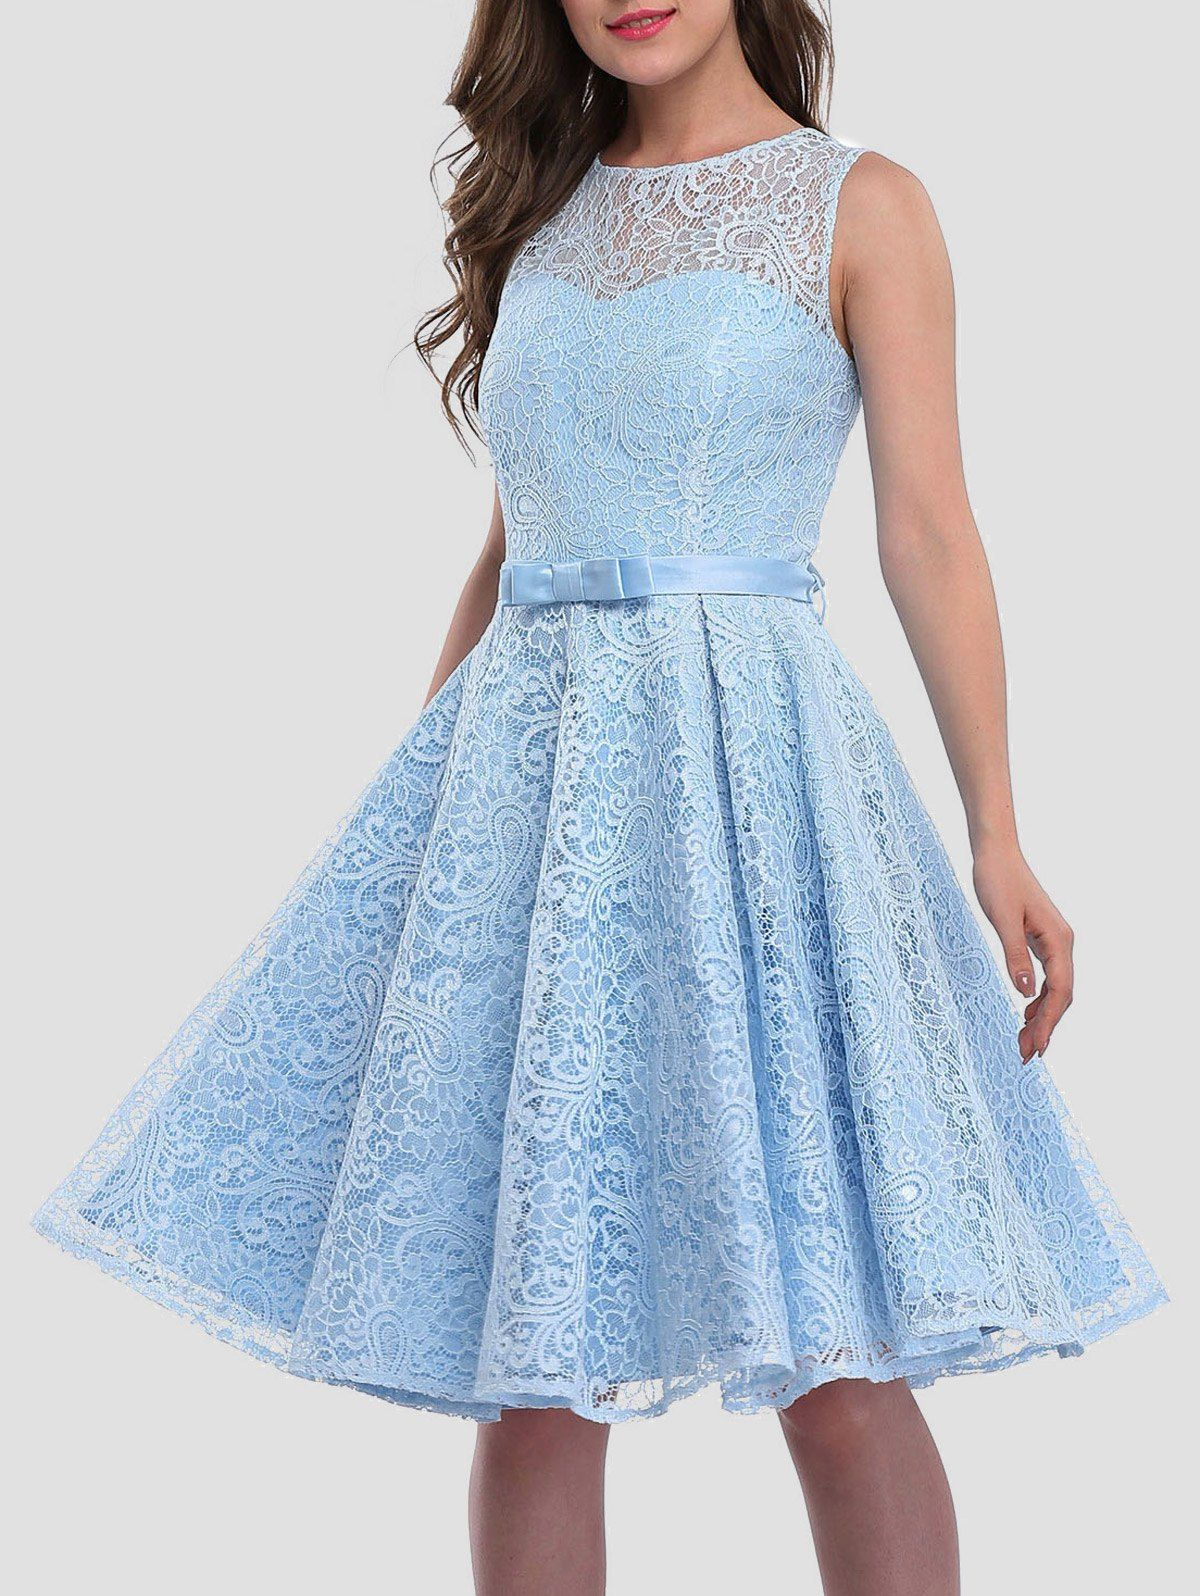 Lace Skater Cocktail Homecoming Formal Dress | Homecoming, Prom ...